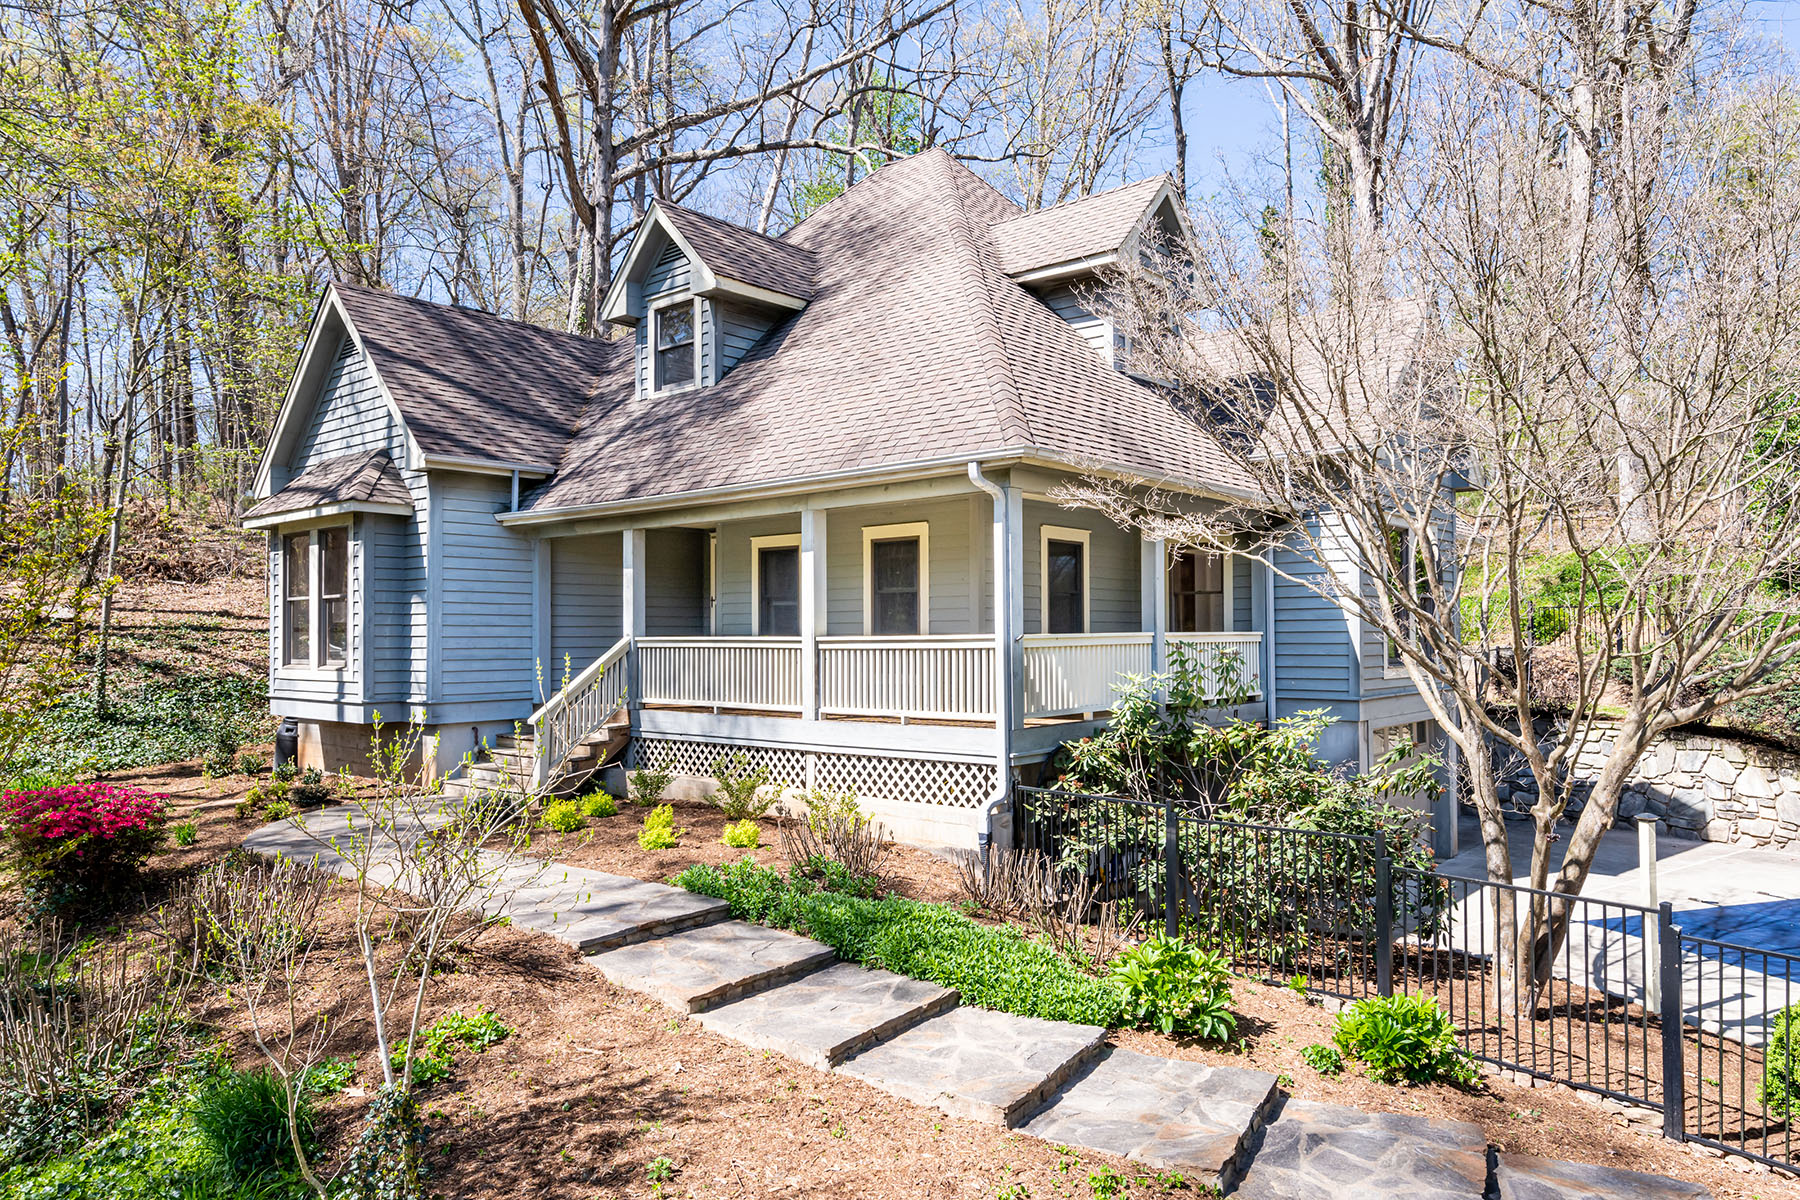 Single Family Homes for Sale at CANDLER - OLD US 19/23 HWY 212 Old Us 19 23 Hwy Candler, North Carolina 28715 United States